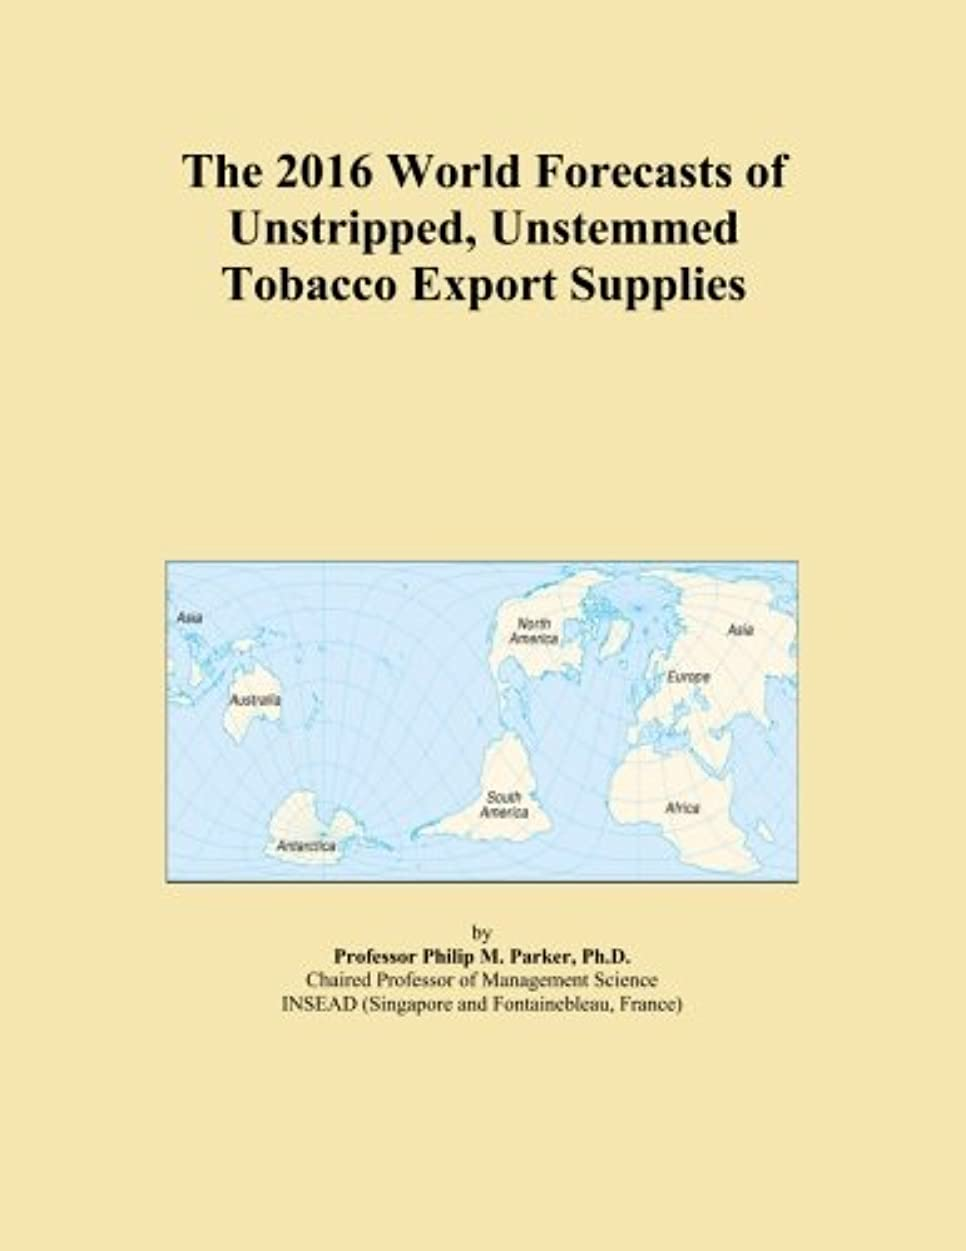 The 2016 World Forecasts of Unstripped, Unstemmed Tobacco Export Supplies